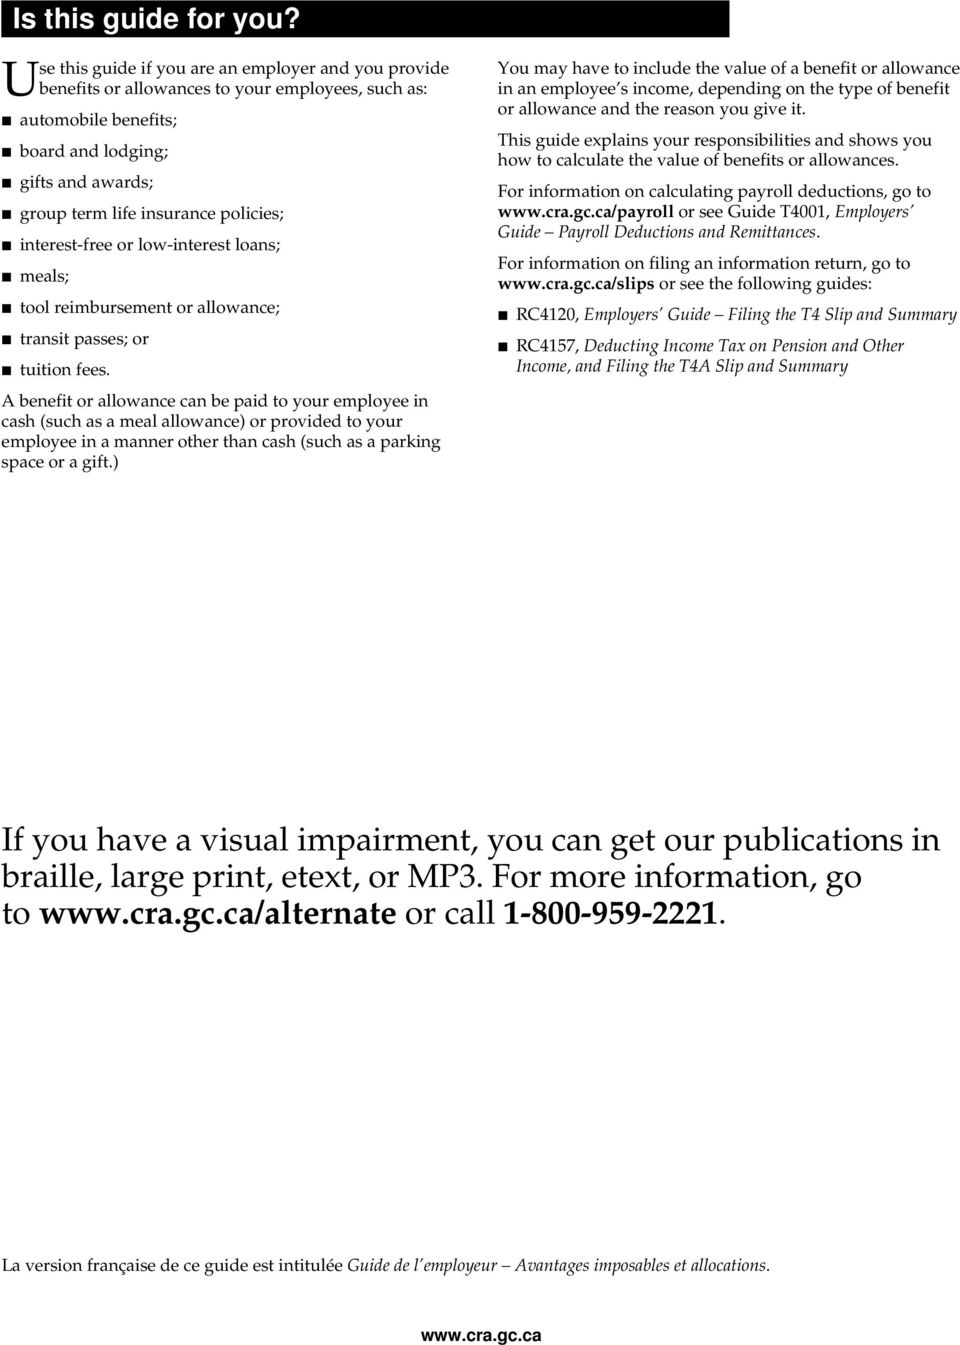 Taxable Benefits and Allowances - PDF